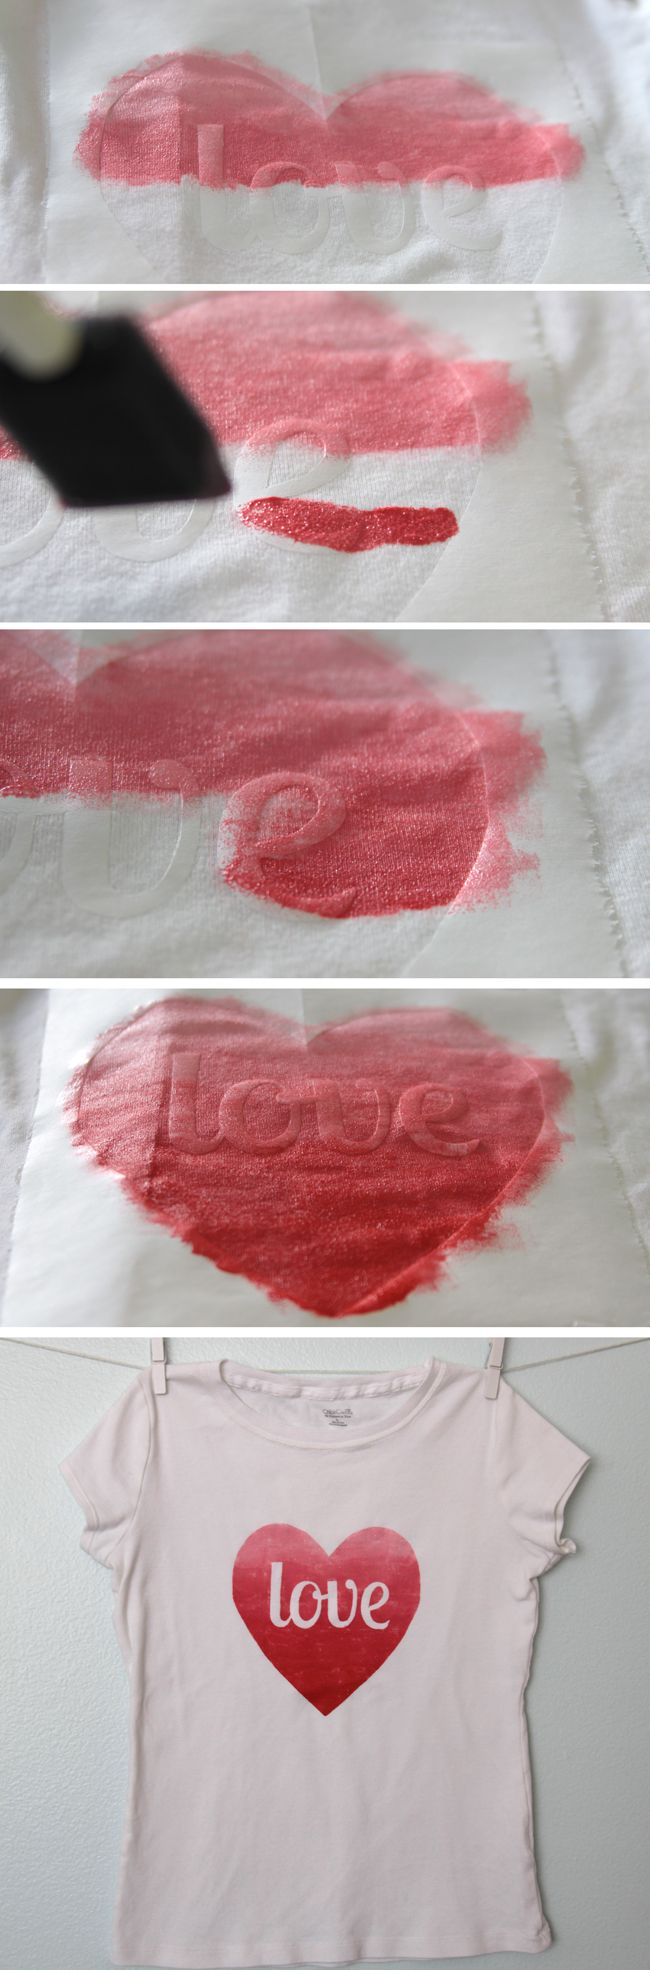 """Tweet Pin It Today's project is a very simple freezer paper stencil shirt – just a heart with the word """"love"""" in the middle. I kept the design simple because I wanted to see if by mixing colors of fabric paint I could get an ombre effect on the heart. I mixed up five different …"""